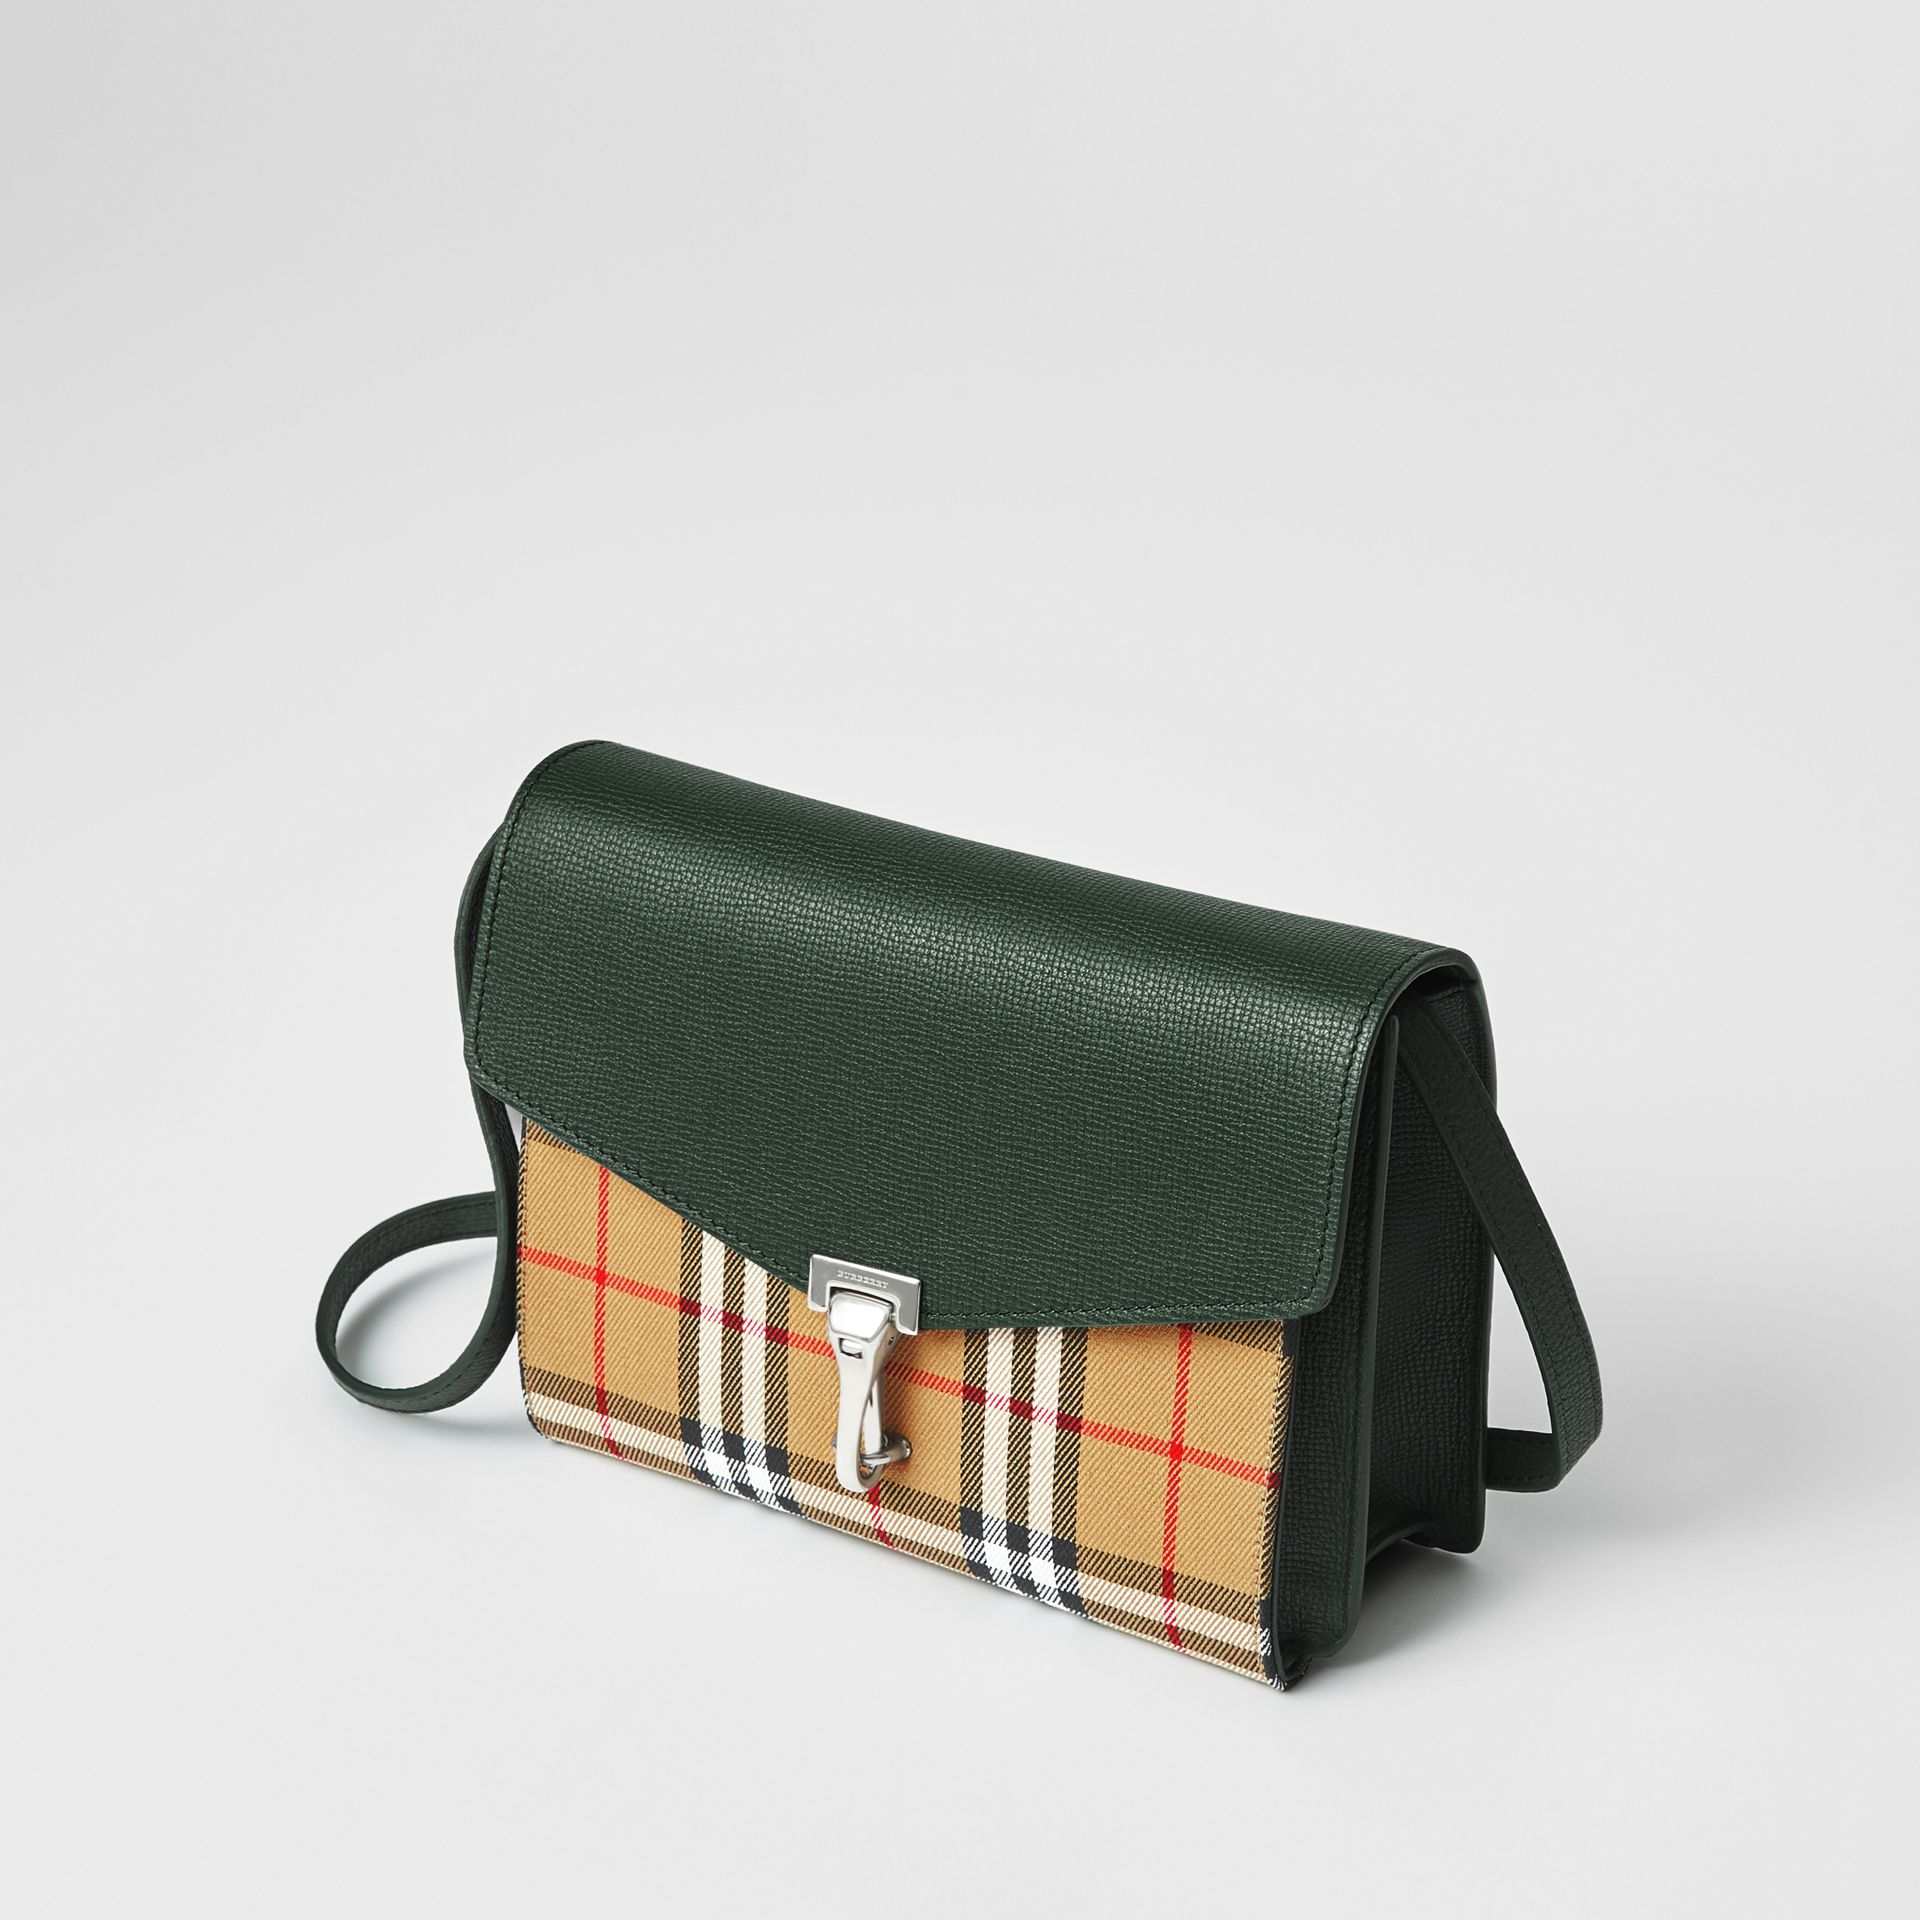 Small Vintage Check and Leather Crossbody Bag in Green - Women | Burberry Singapore - gallery image 4